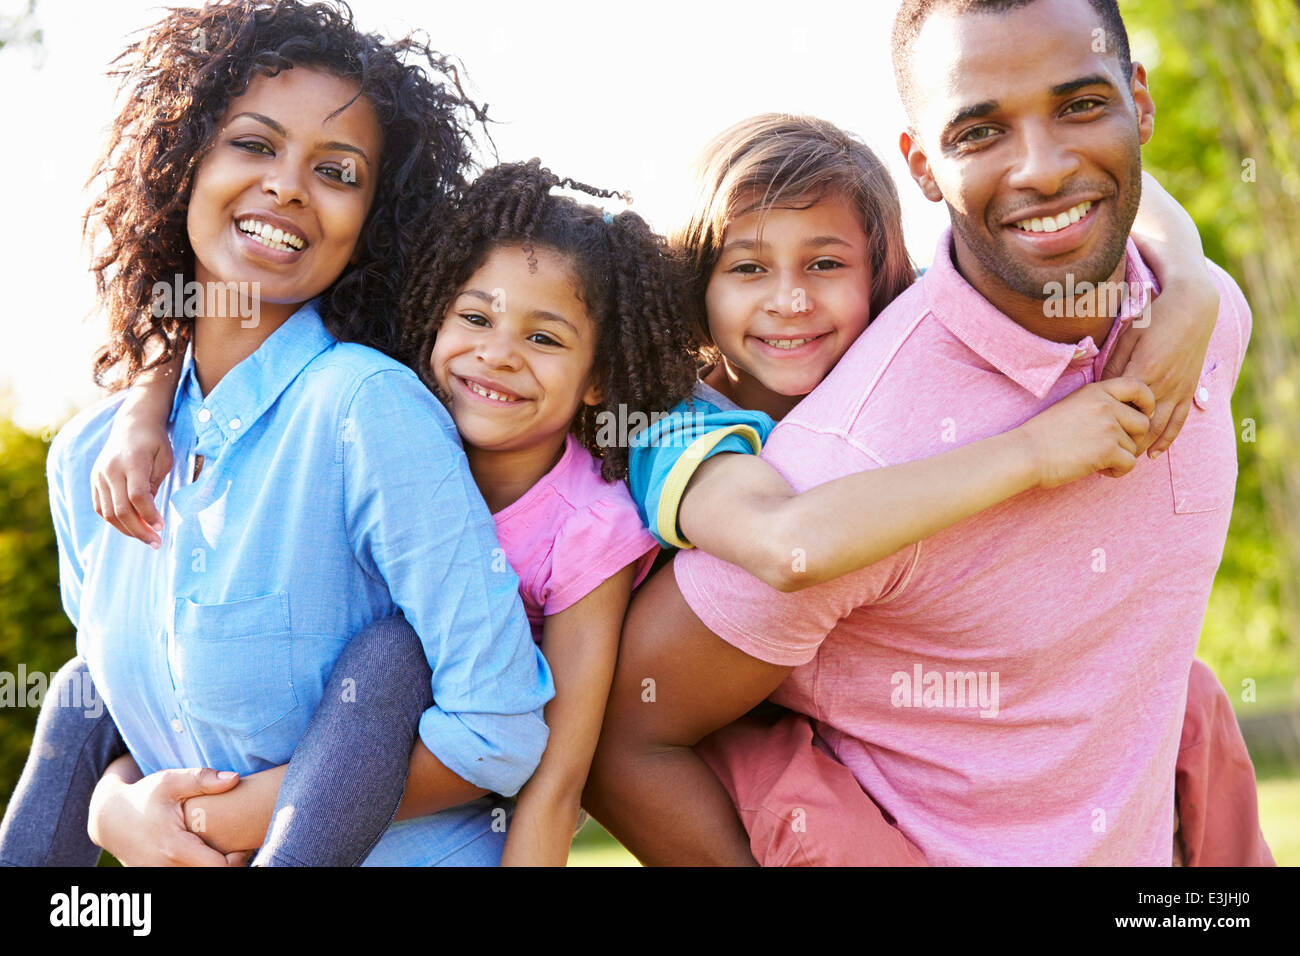 African American Parents Giving Children Piggyback Rides - Stock Image